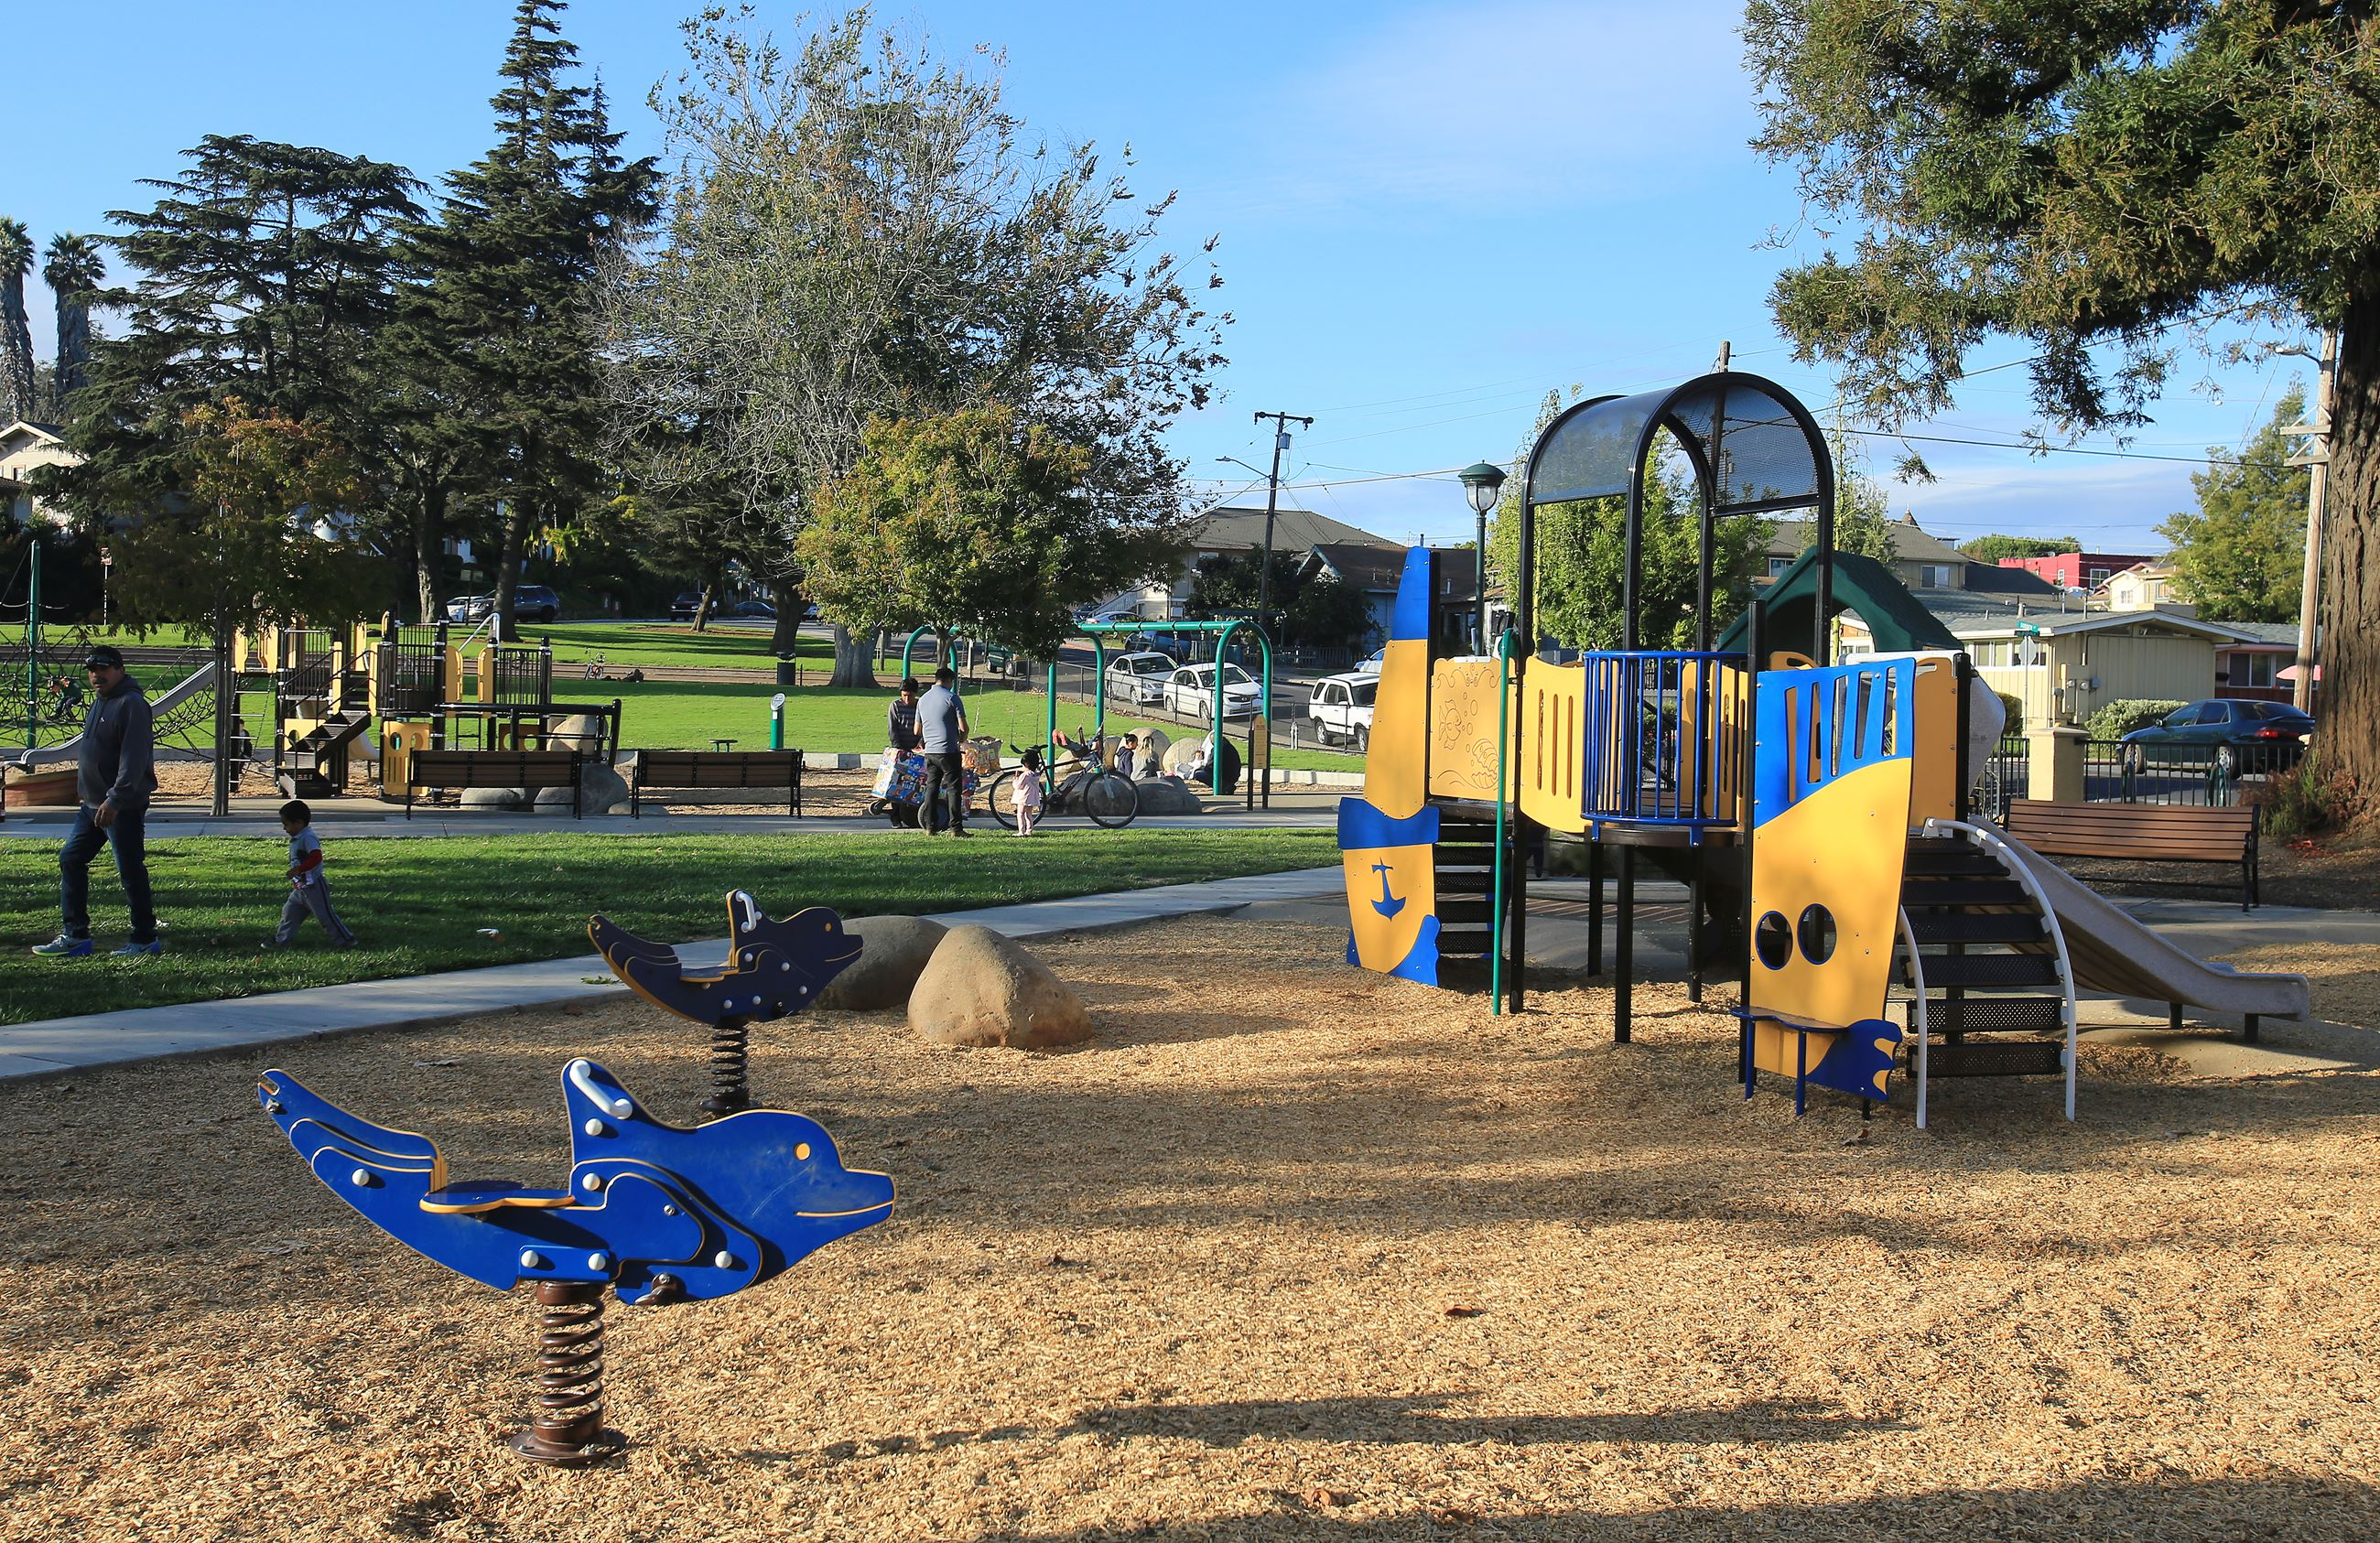 Callaghan park playground area with sand